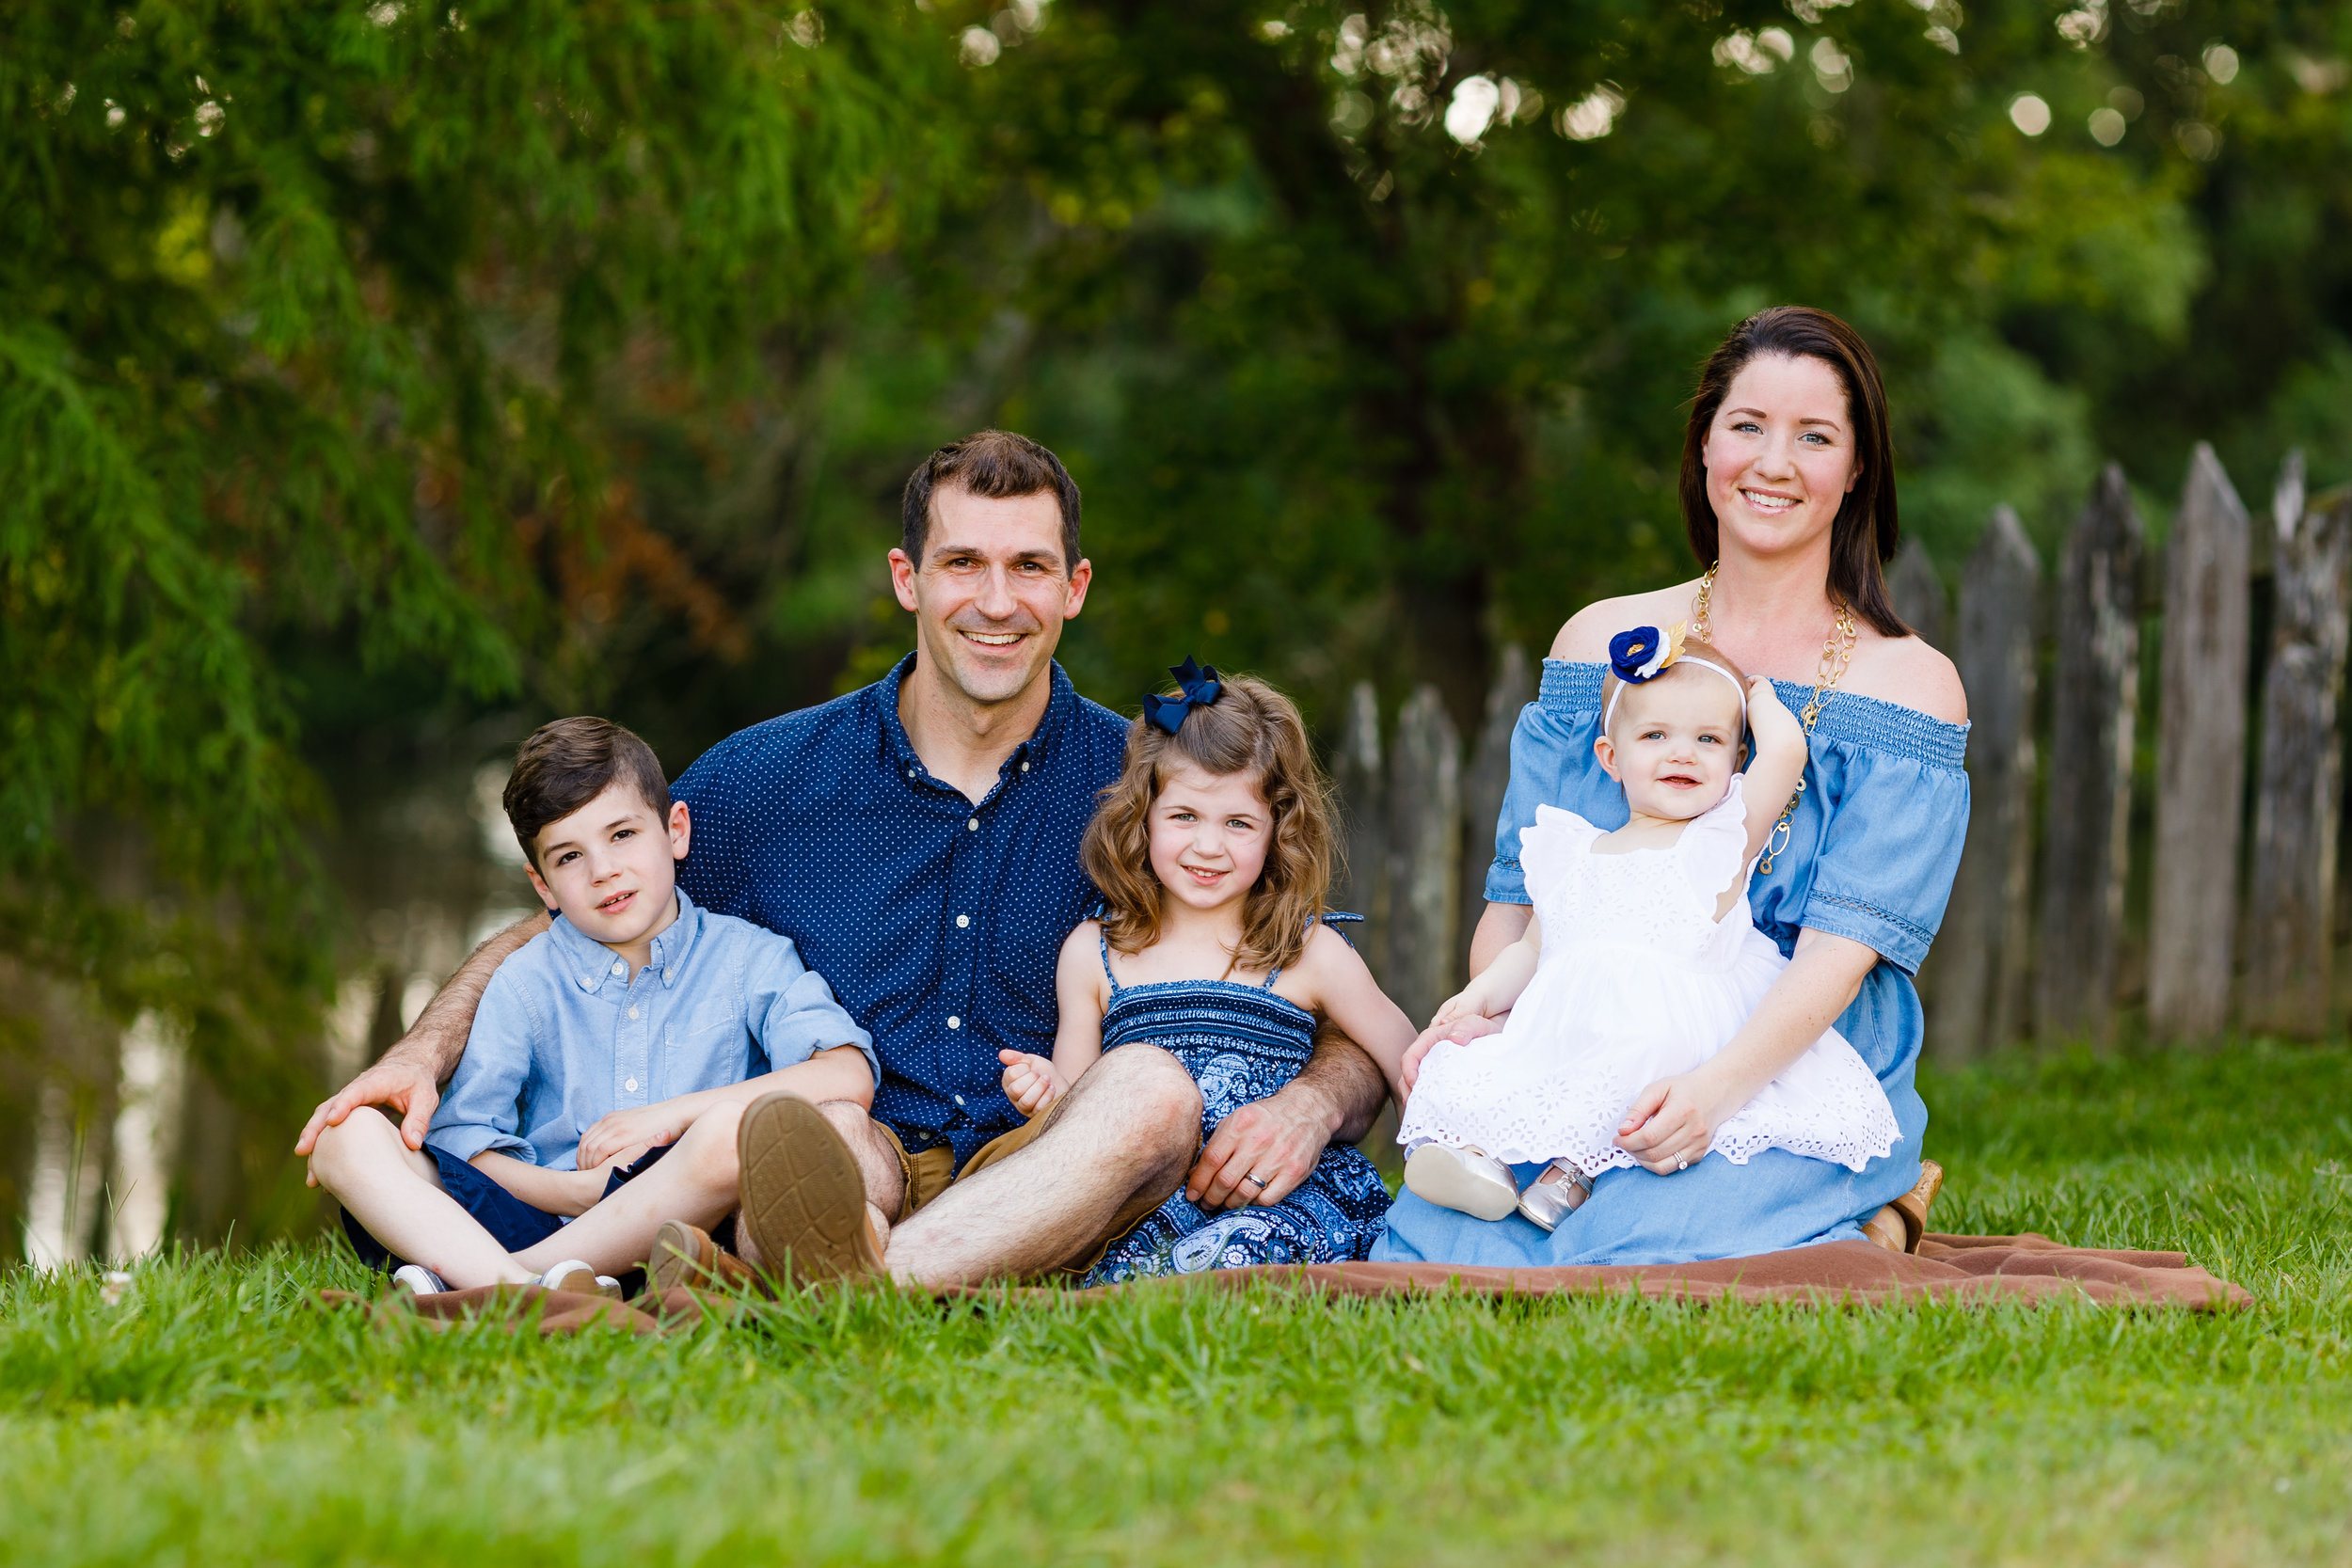 Youngsville-lafayette-portrait-family-wedding-photographer-9787.jpg